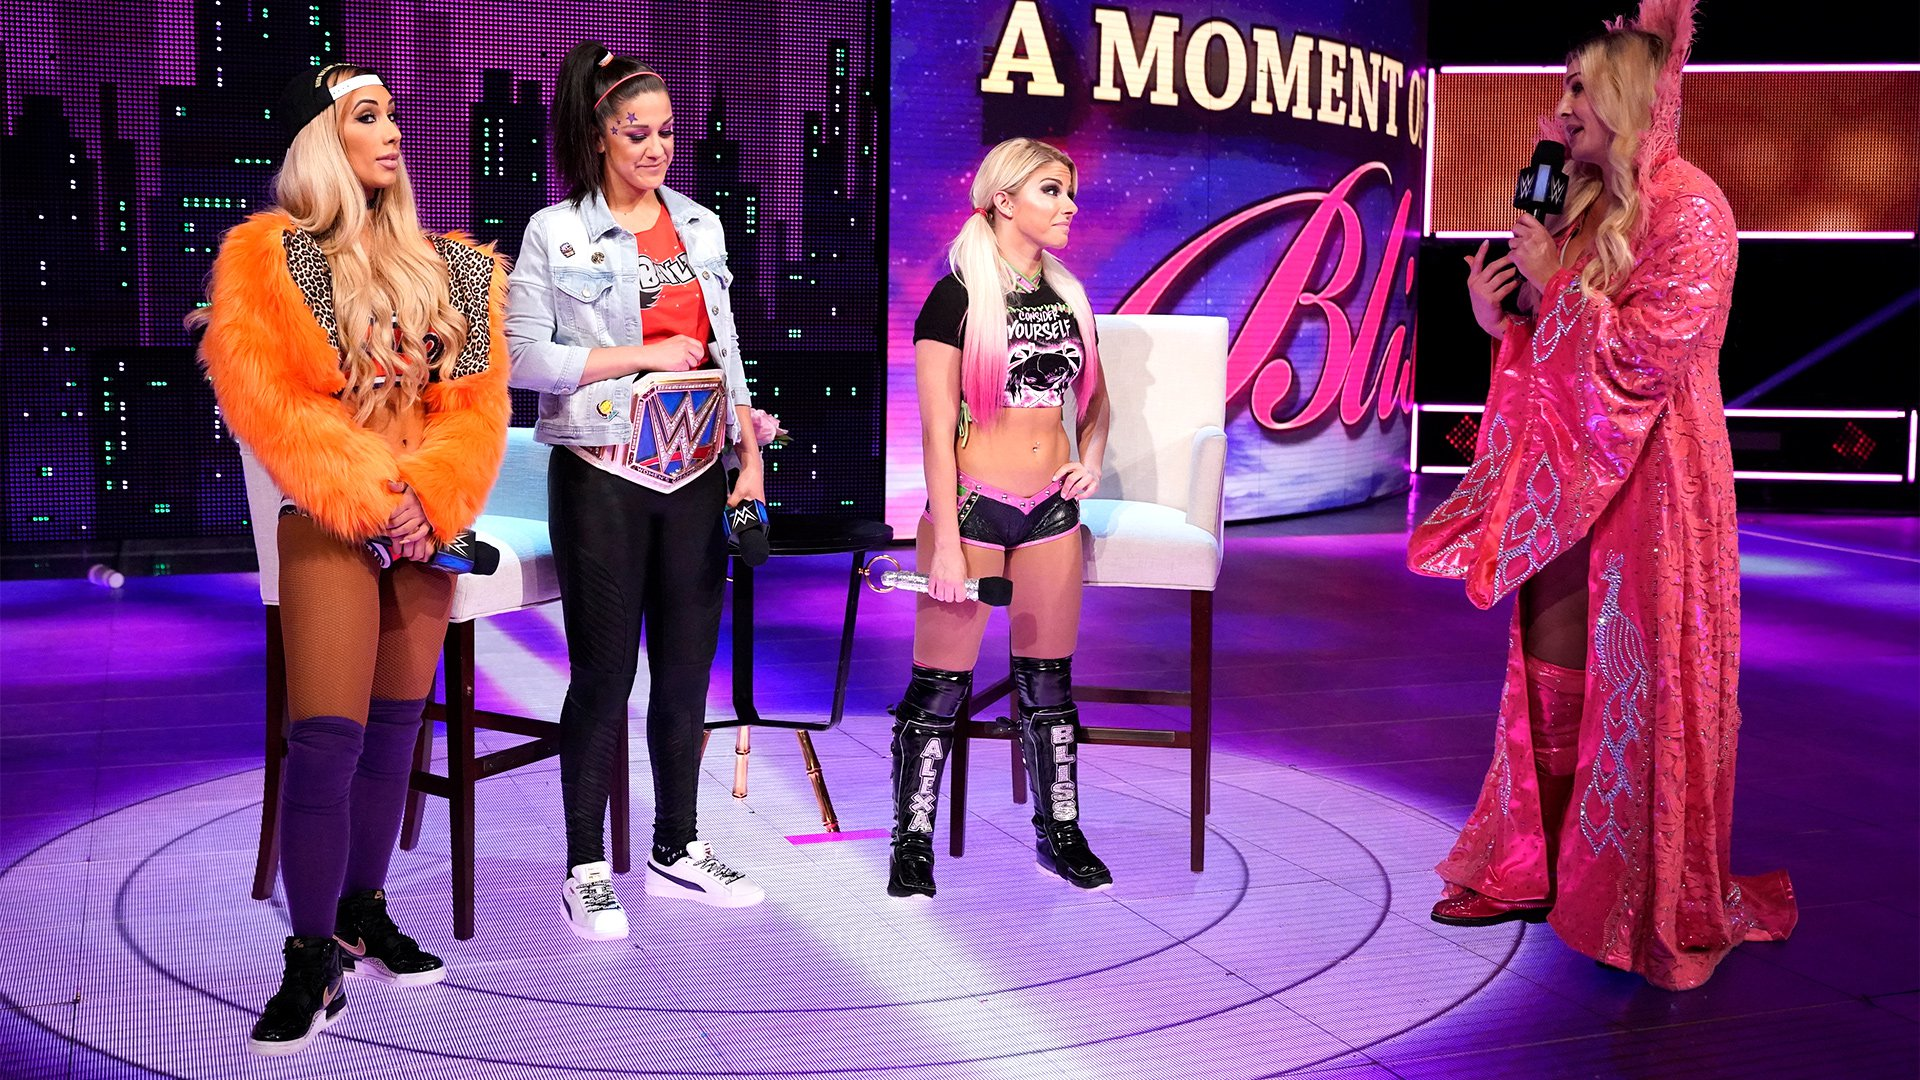 Flair discloses that Shane has told her that there will be a match tonight to determine Bayley's challenger: Bayley vs. Alexa vs. Charlotte!